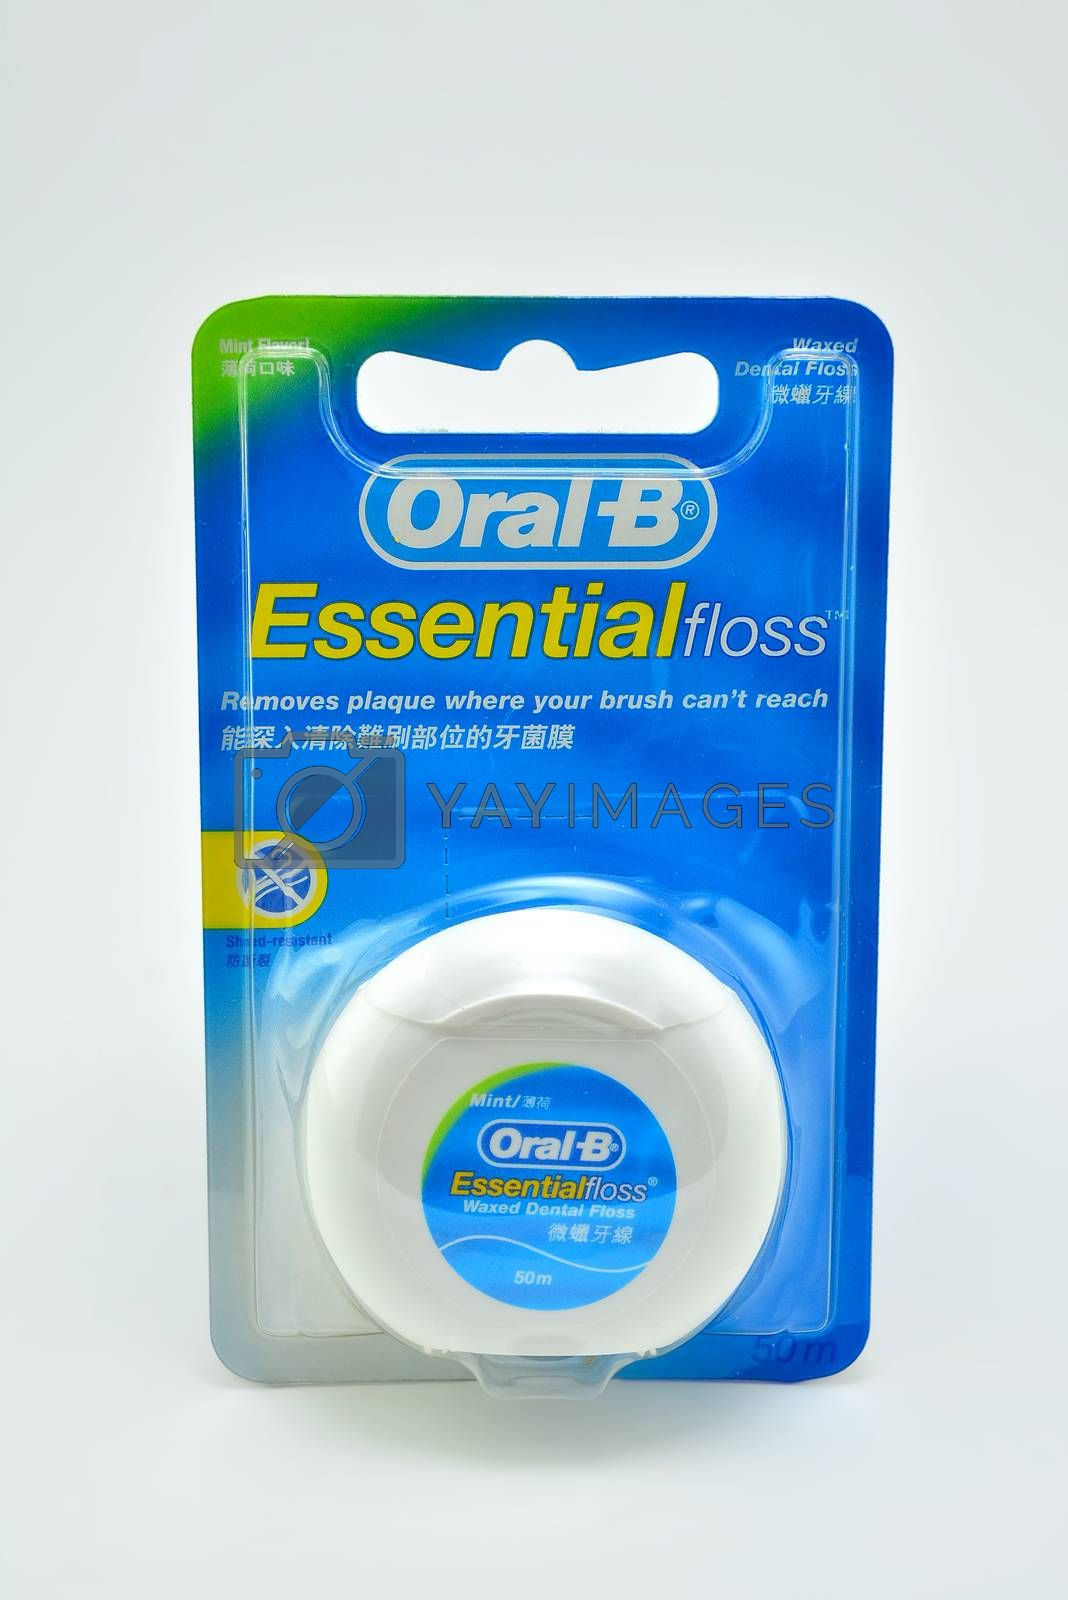 QUEZON CITY, PH - JULY 8 - Oral b essential floss on July 8, 2020 in Quezon City, Philippines.